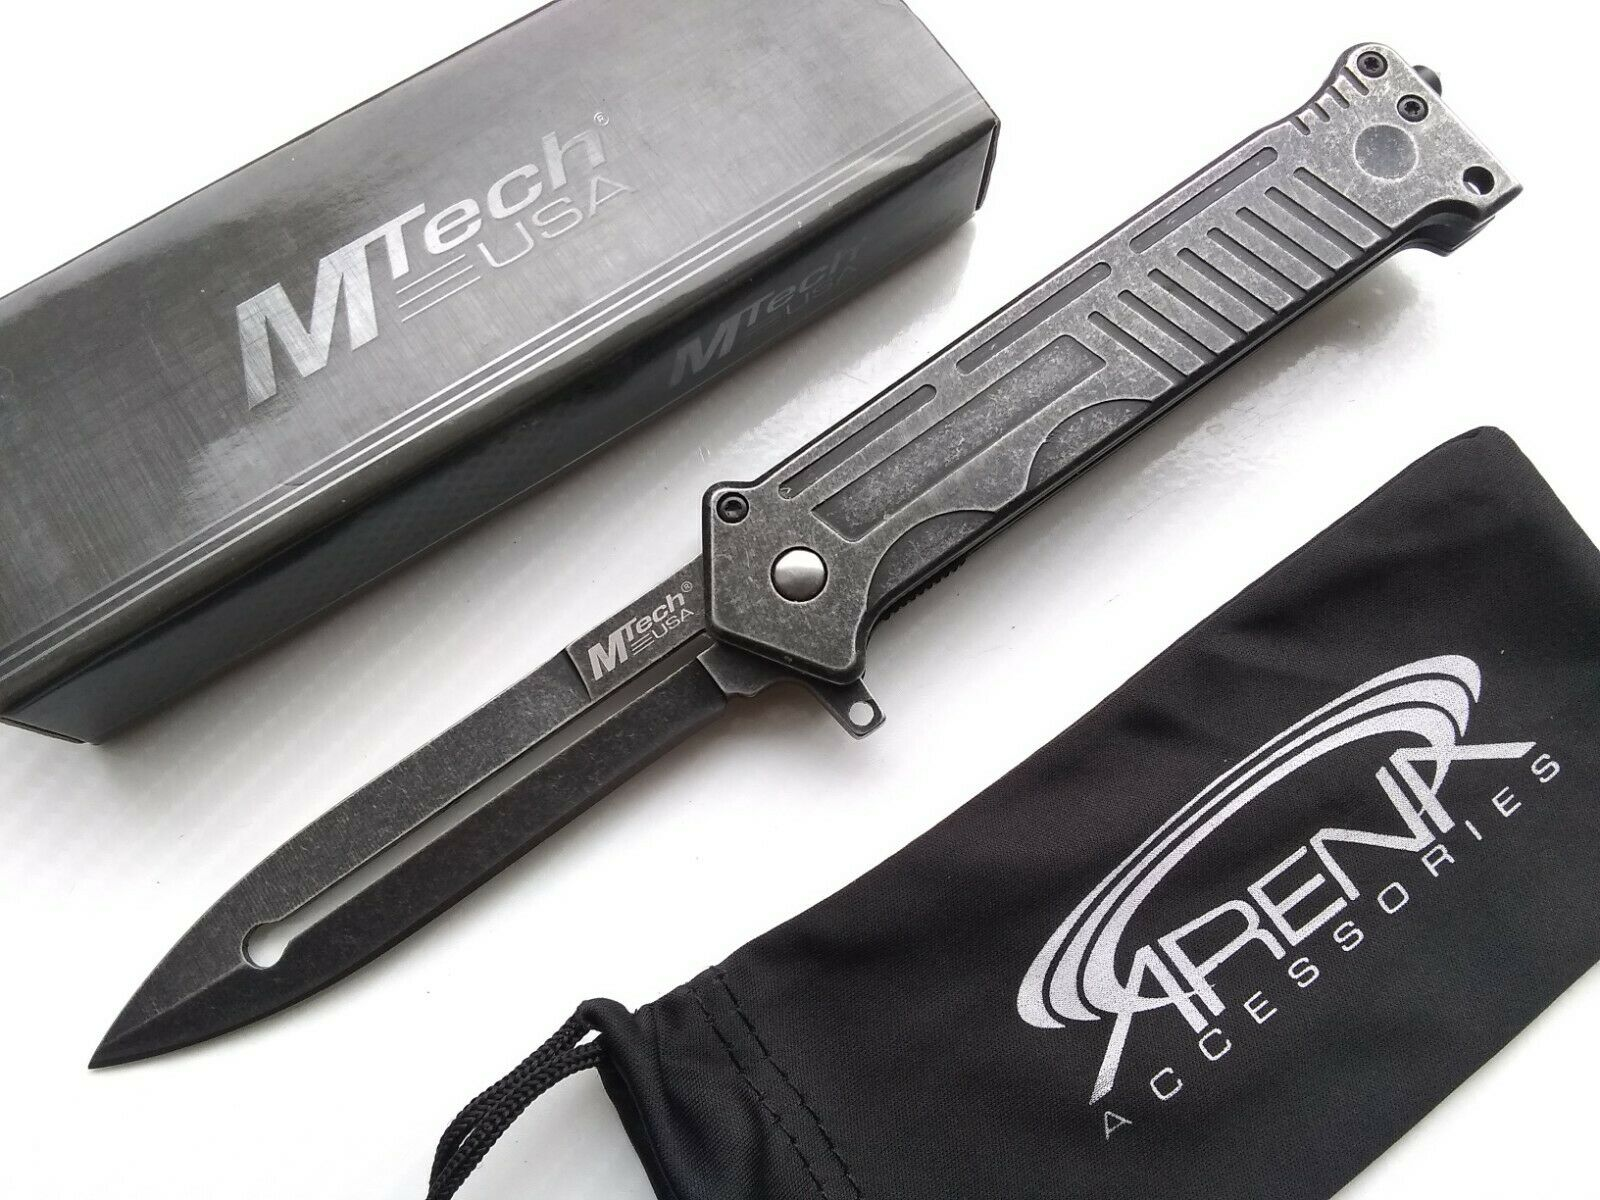 MTech Star Wars Jedi Lightsaber Mandalorian Joker Dagger Blade Spring Assisted Stonewashed Pocket Knife EDC Tip Up